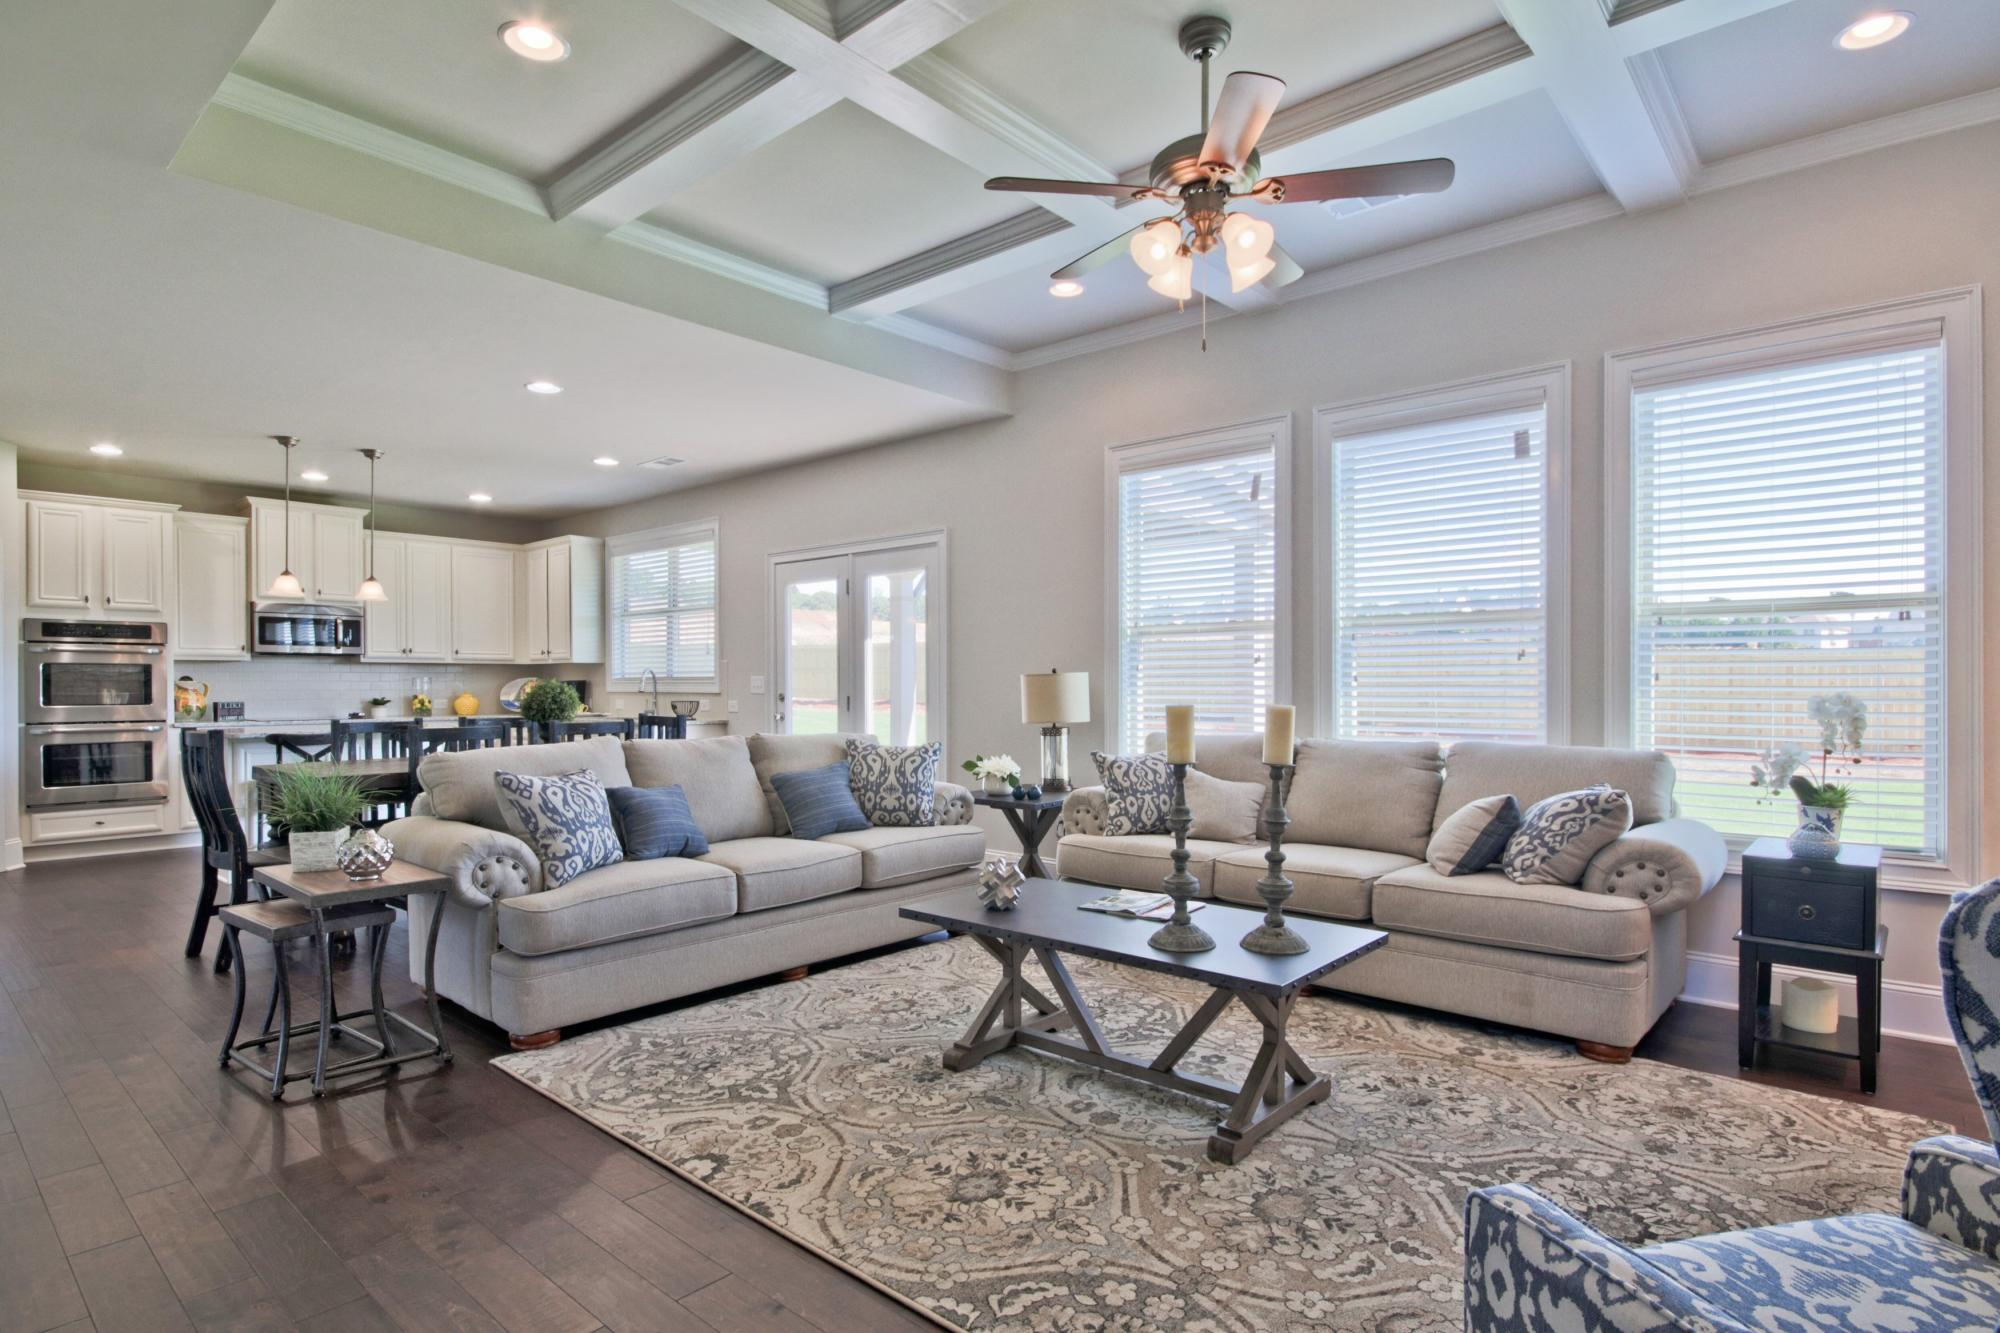 New Dacula Homes Now Selling at Almont Homes Right Choice™ Community